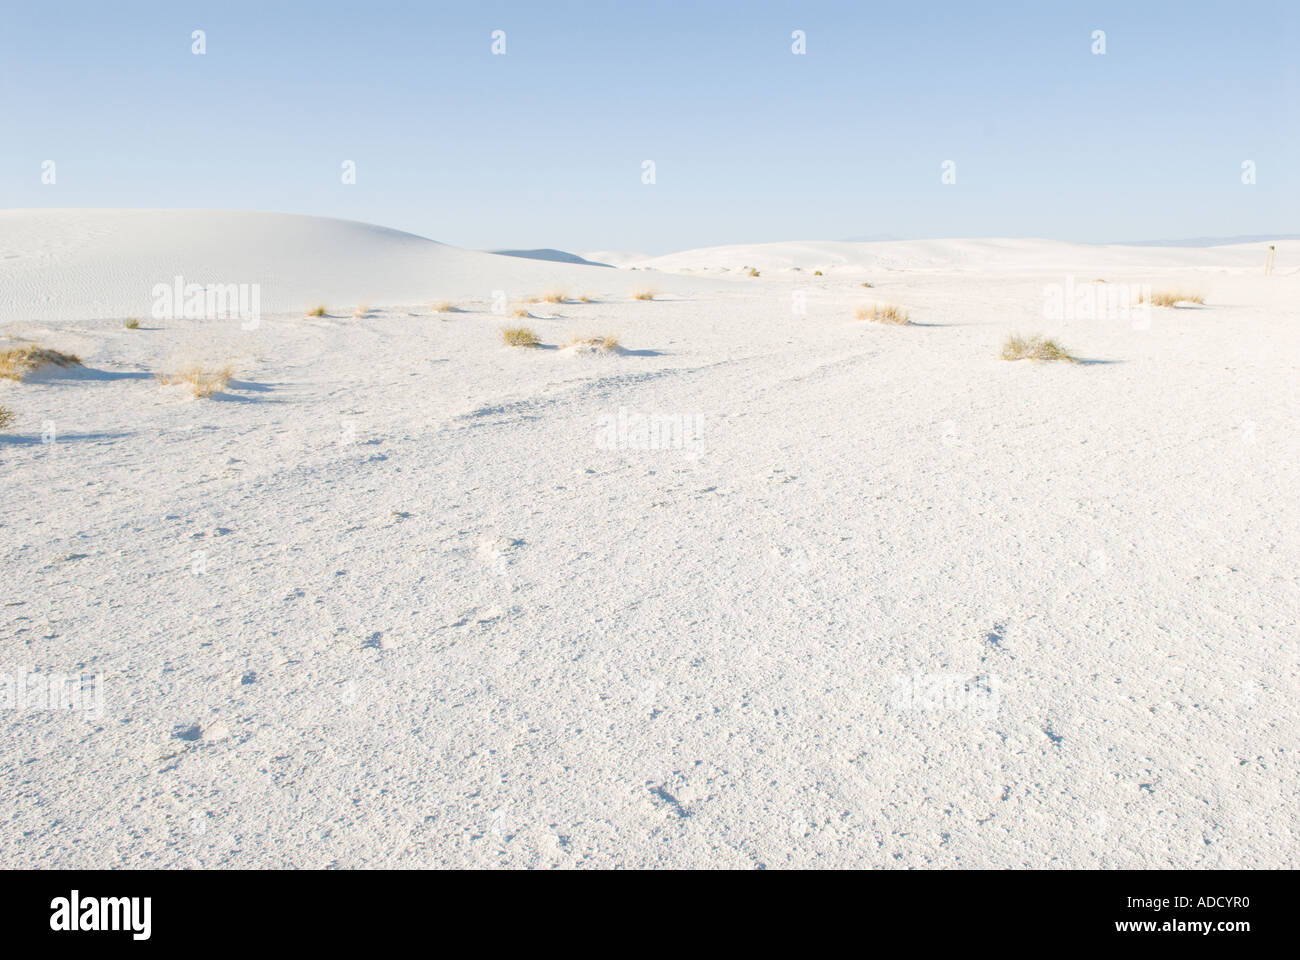 Dunes with sparse vegetation at White Sands National Monument - Stock Image